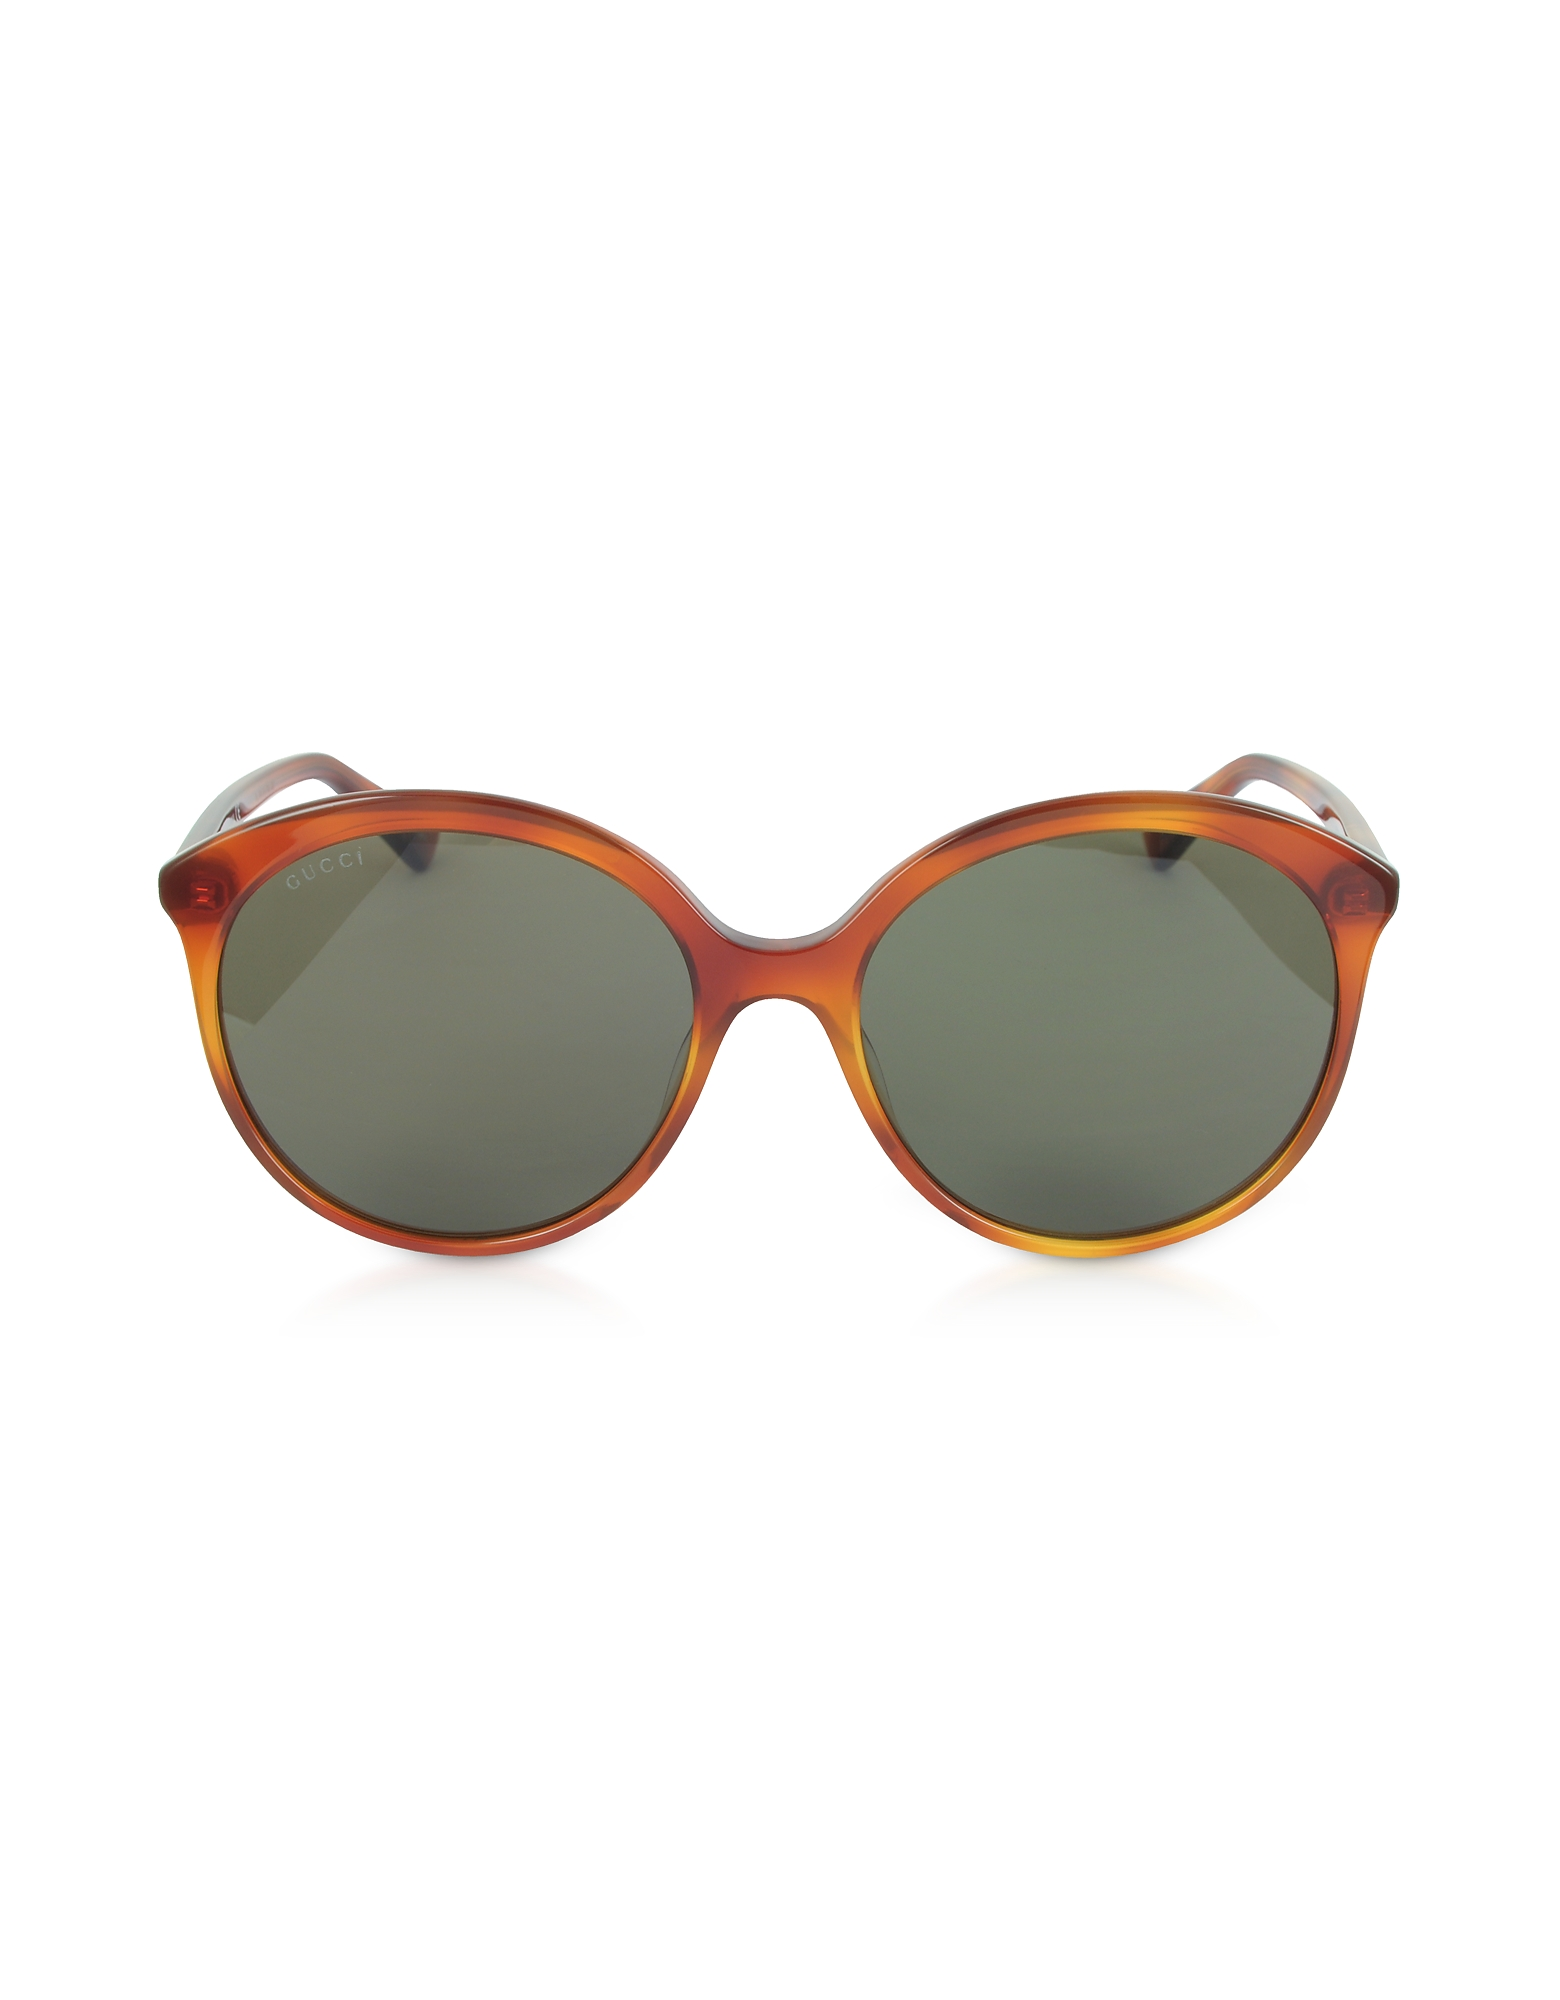 Gucci Designer Sunglasses, GG0257S Specialized Fit Round-frame Havana Brown Acetate Sunglasses